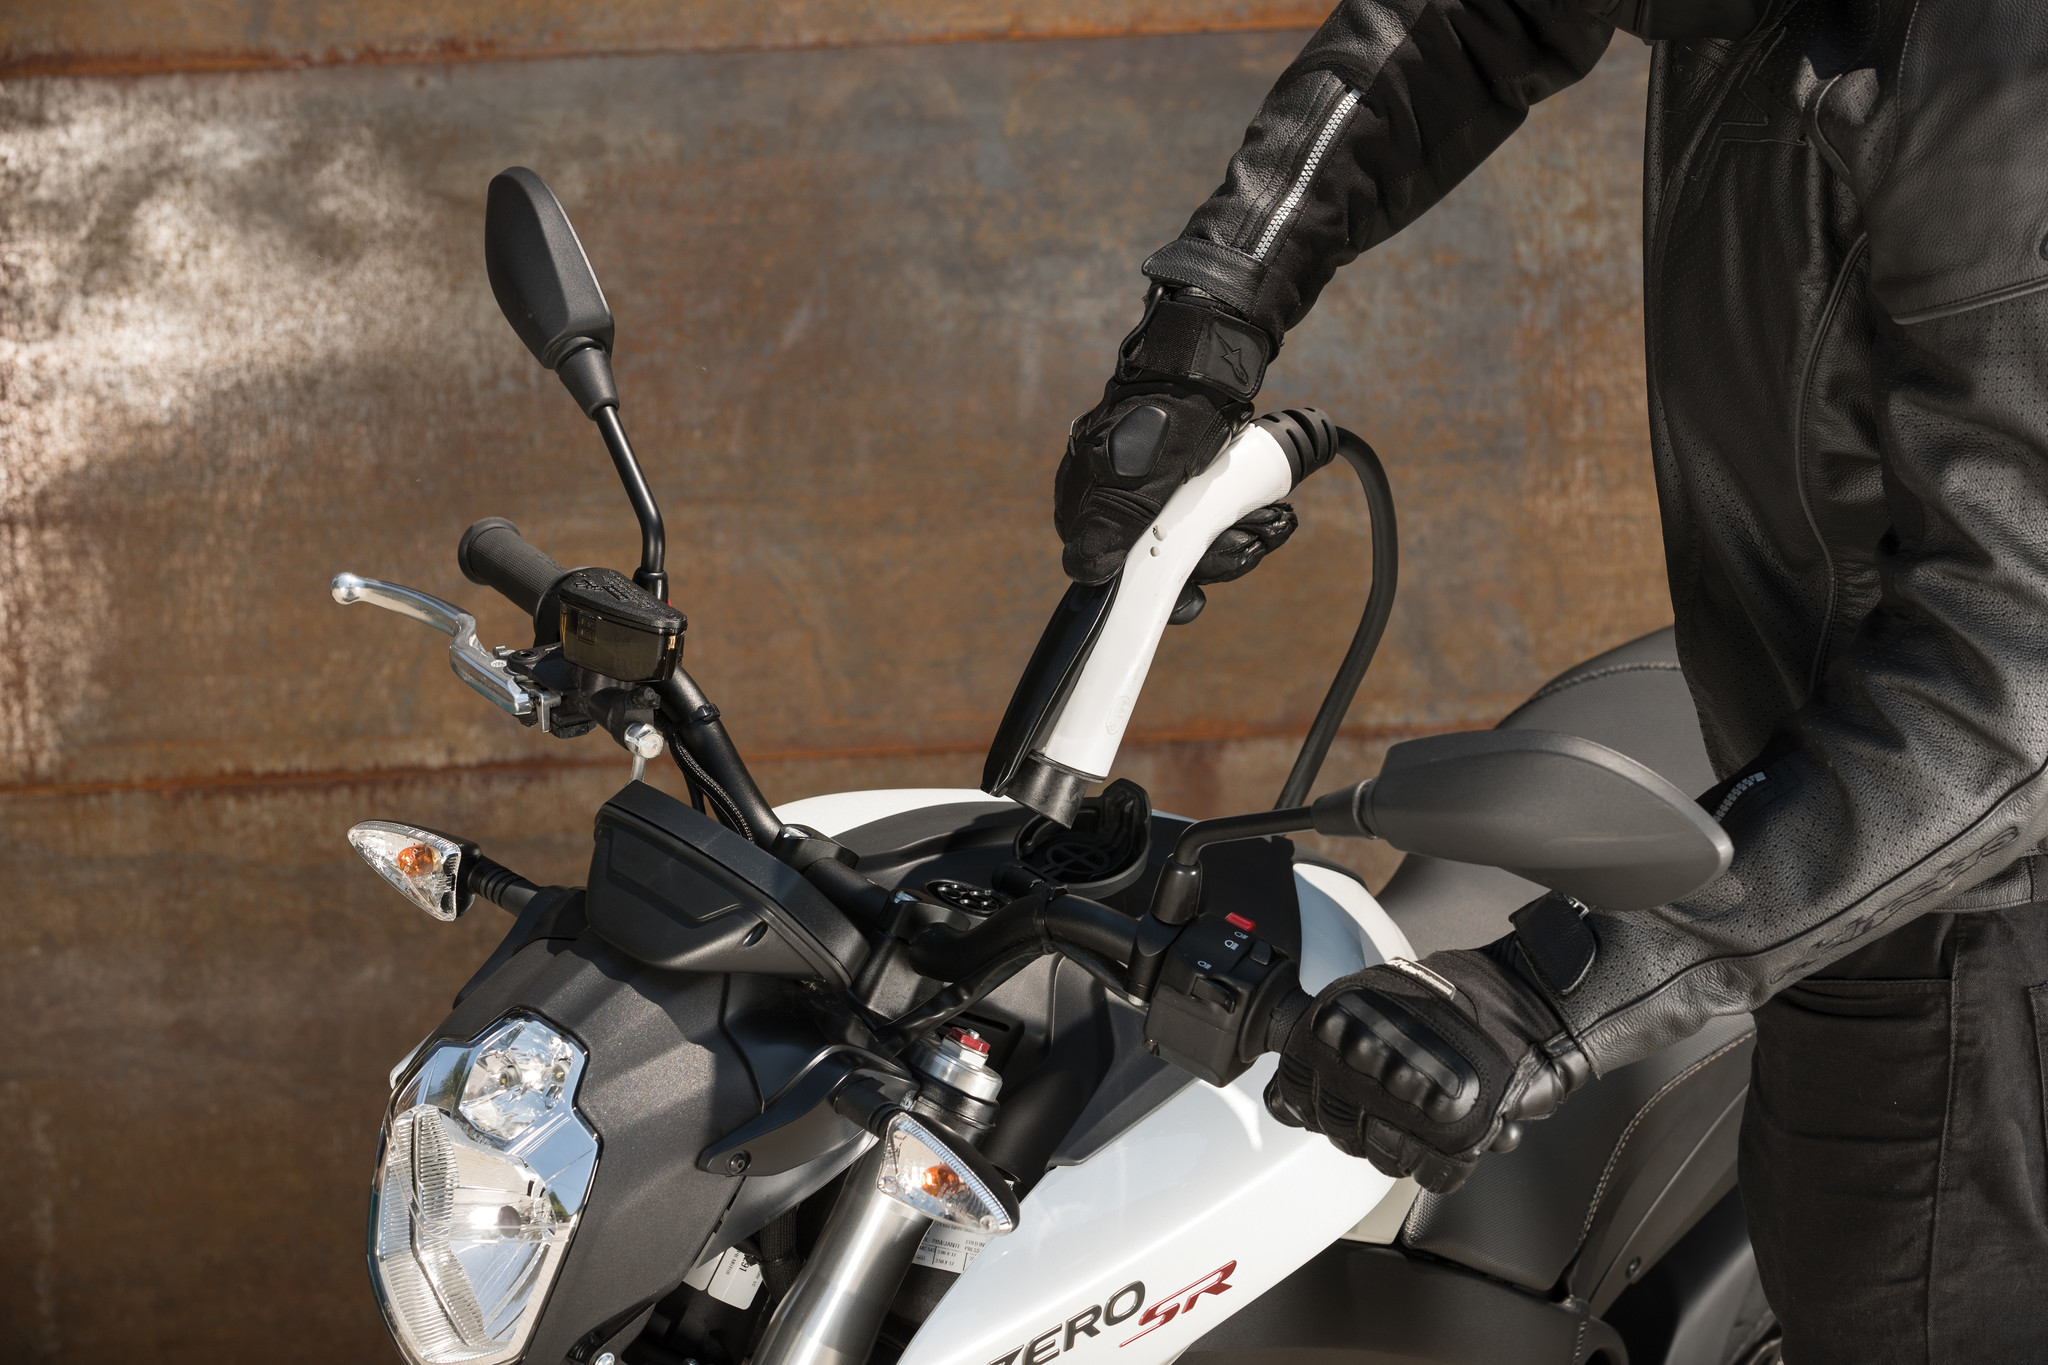 2018 Zero Motorcycles: These electric bikes go farther and recharge